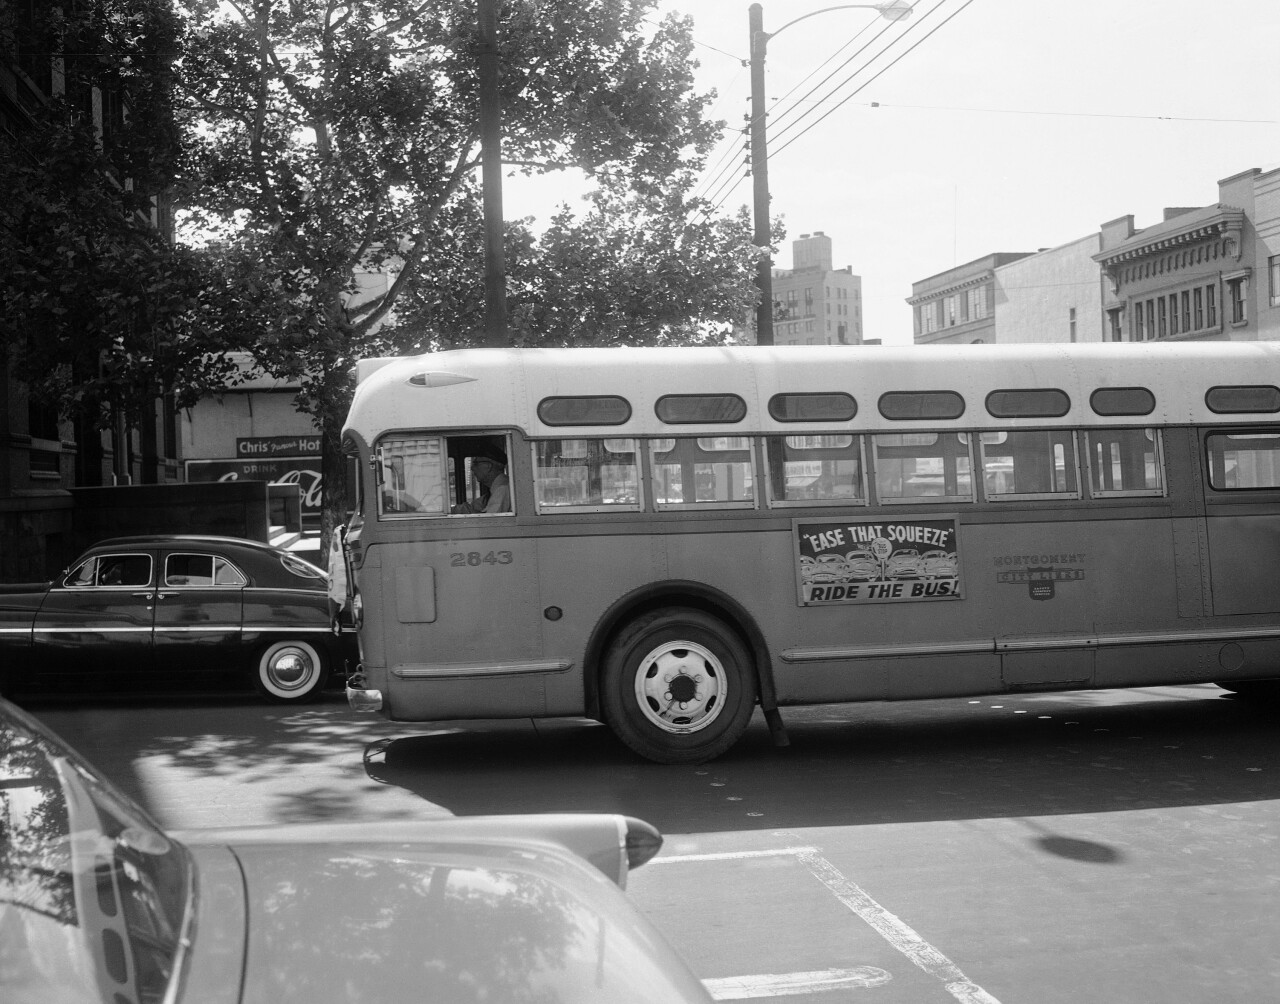 In this April 26, 1956, file photo, a bus driver is all alone as his empty bus moves through downtown Montgomery, Ala, as a boycott continues even though the bus company has ordered an end to segregation. The 60th anniversary of the Montgomery bus boycott is widely credited with helping spark the modern civil rights movement. (AP Photo/Horace Cort, file)